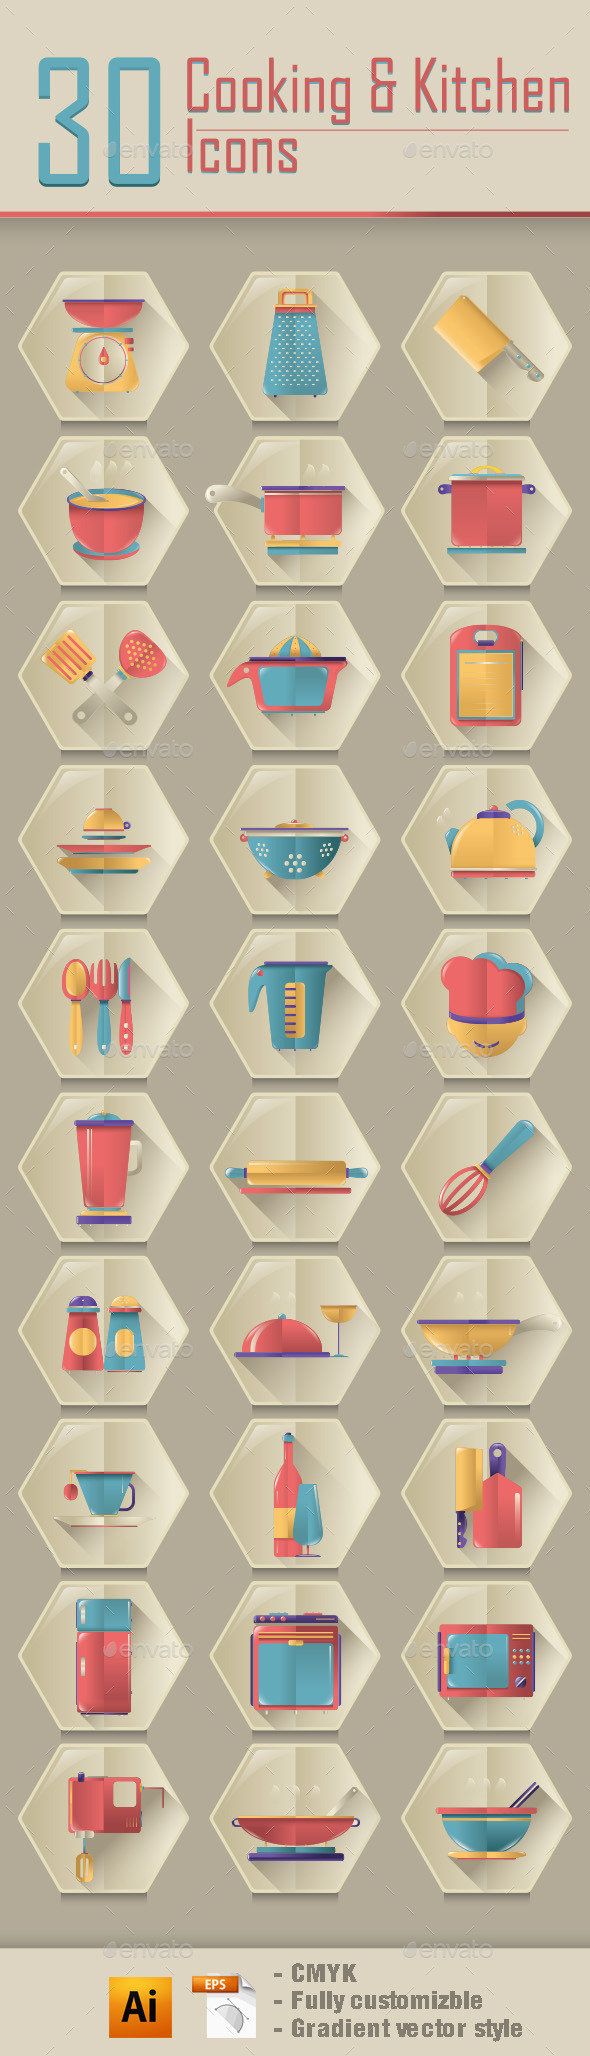 GraphicRiver Cooking & Kitchen Icons 9731206